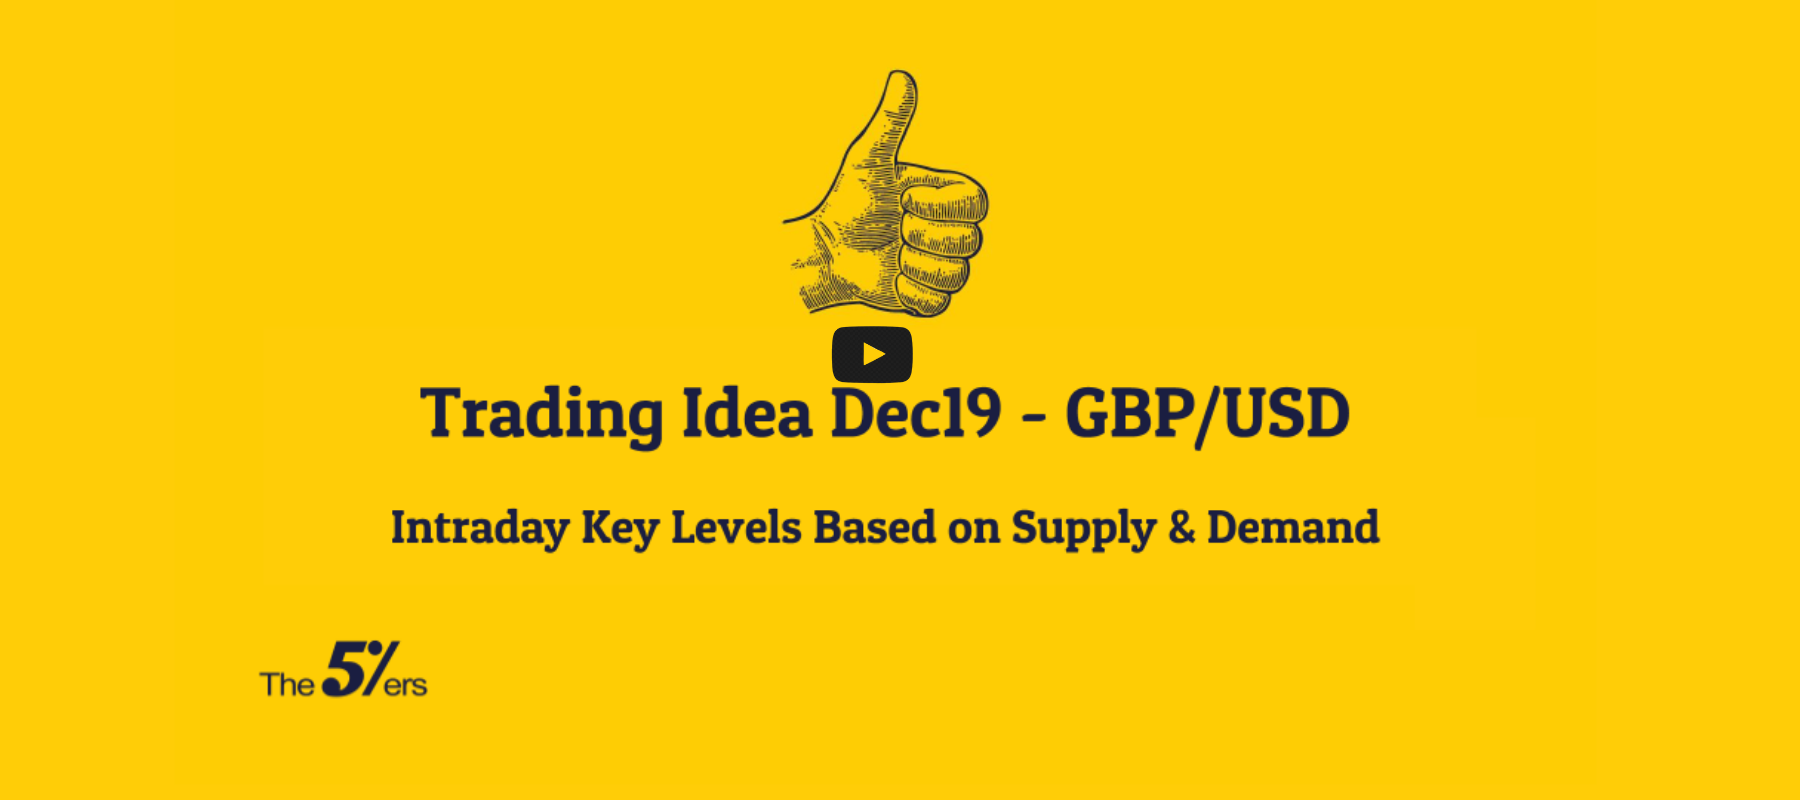 Trading Idea Dec19 - GBP_USD_ Intraday Key Levels Based on Supply & Demand